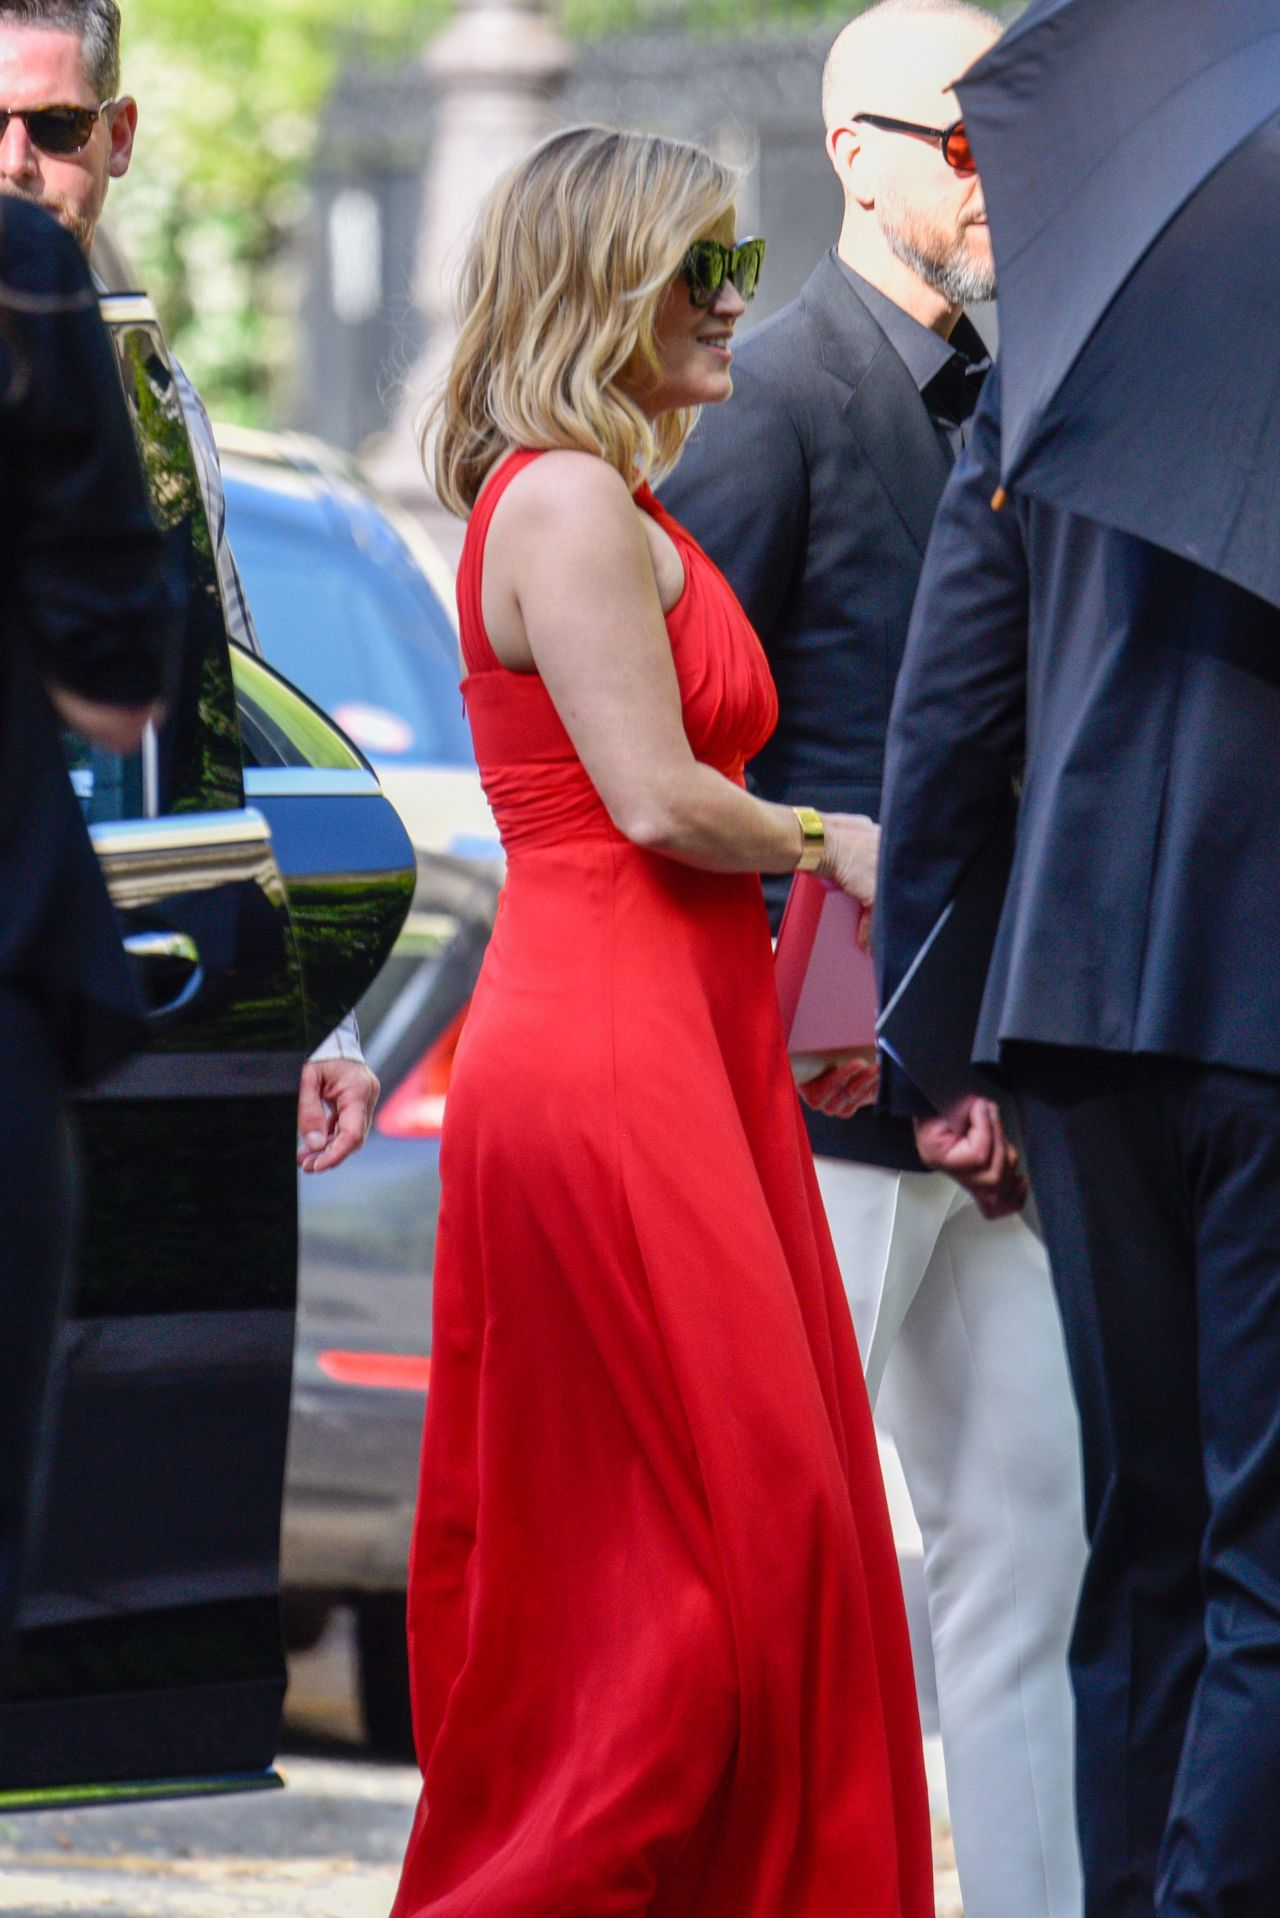 Reese Witherspoon Arrives For Zoe Kravitz And Karl Glusman